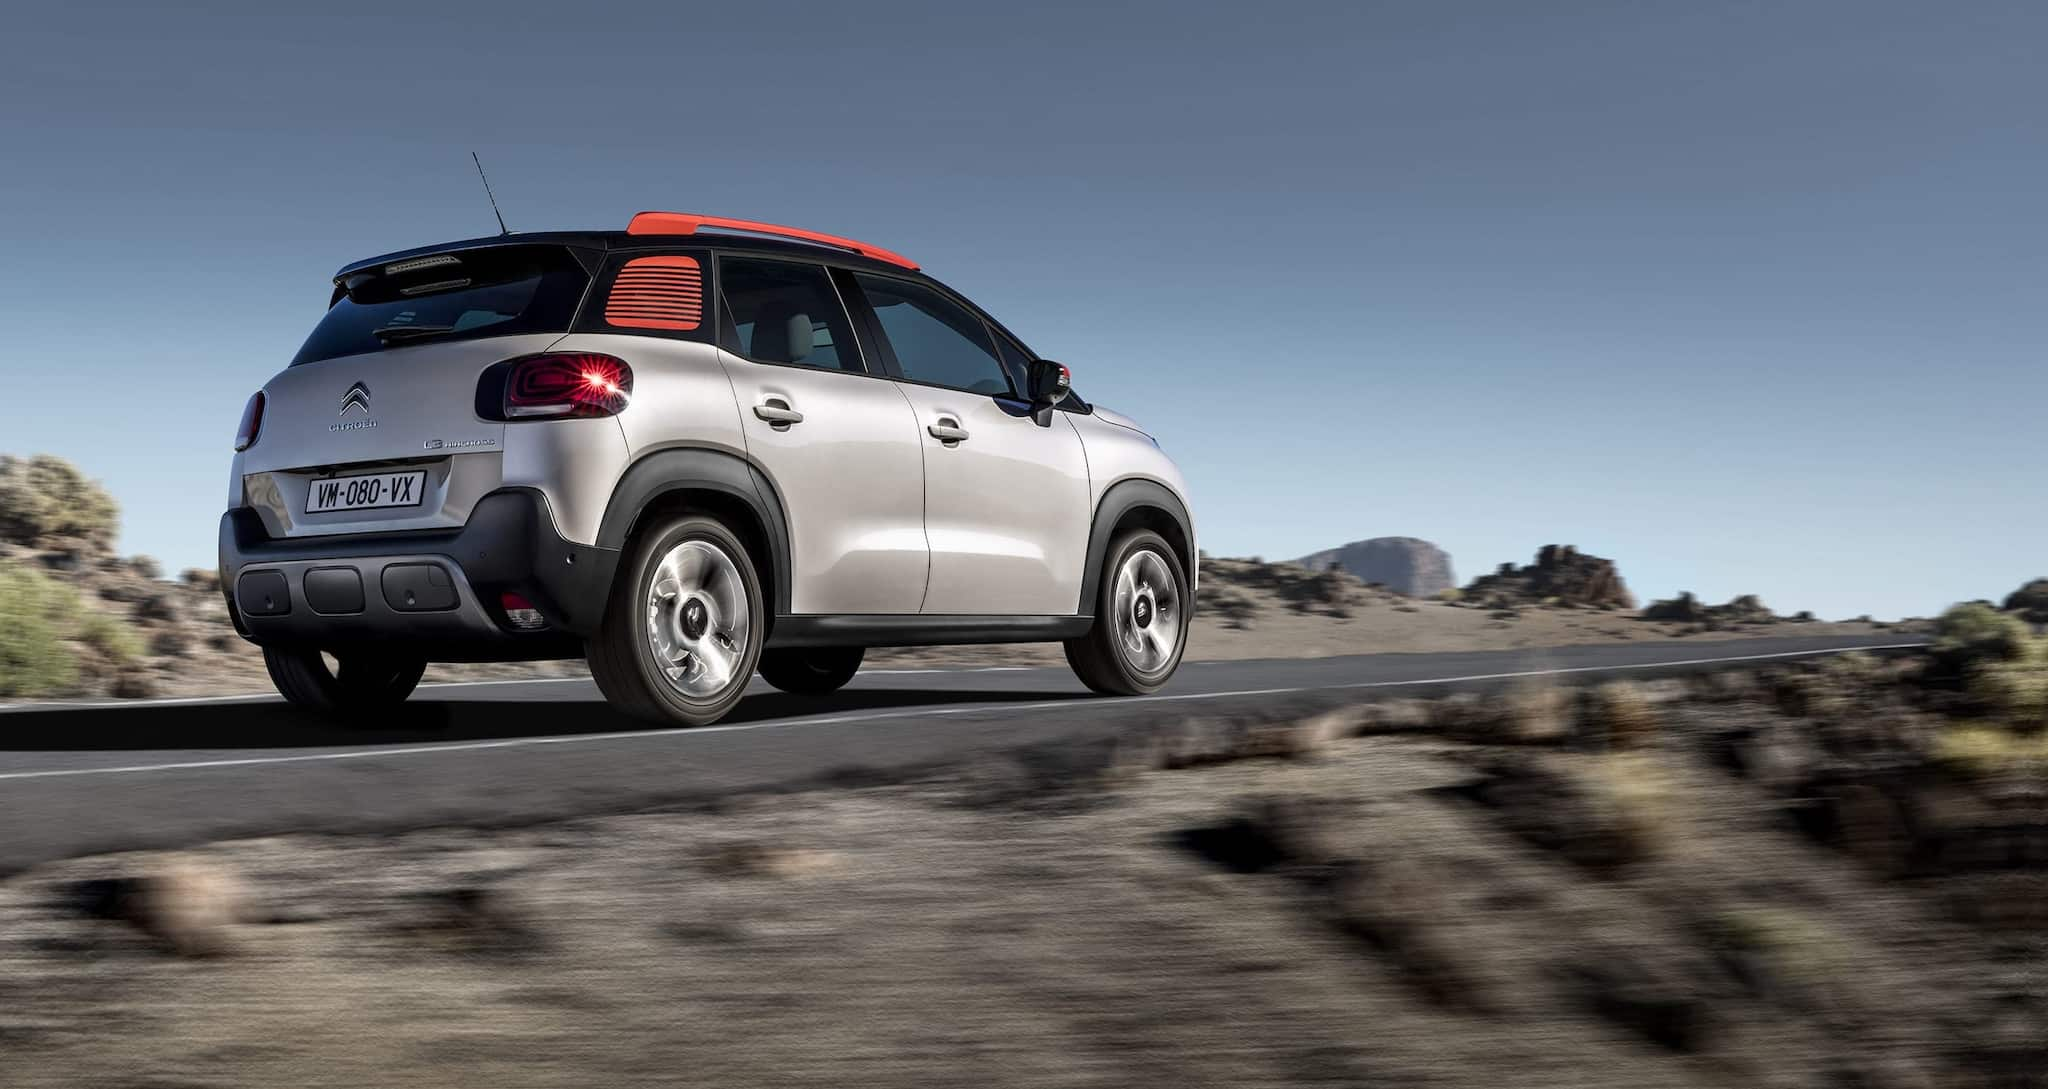 C3 AIRCROSS SUV OFFERS